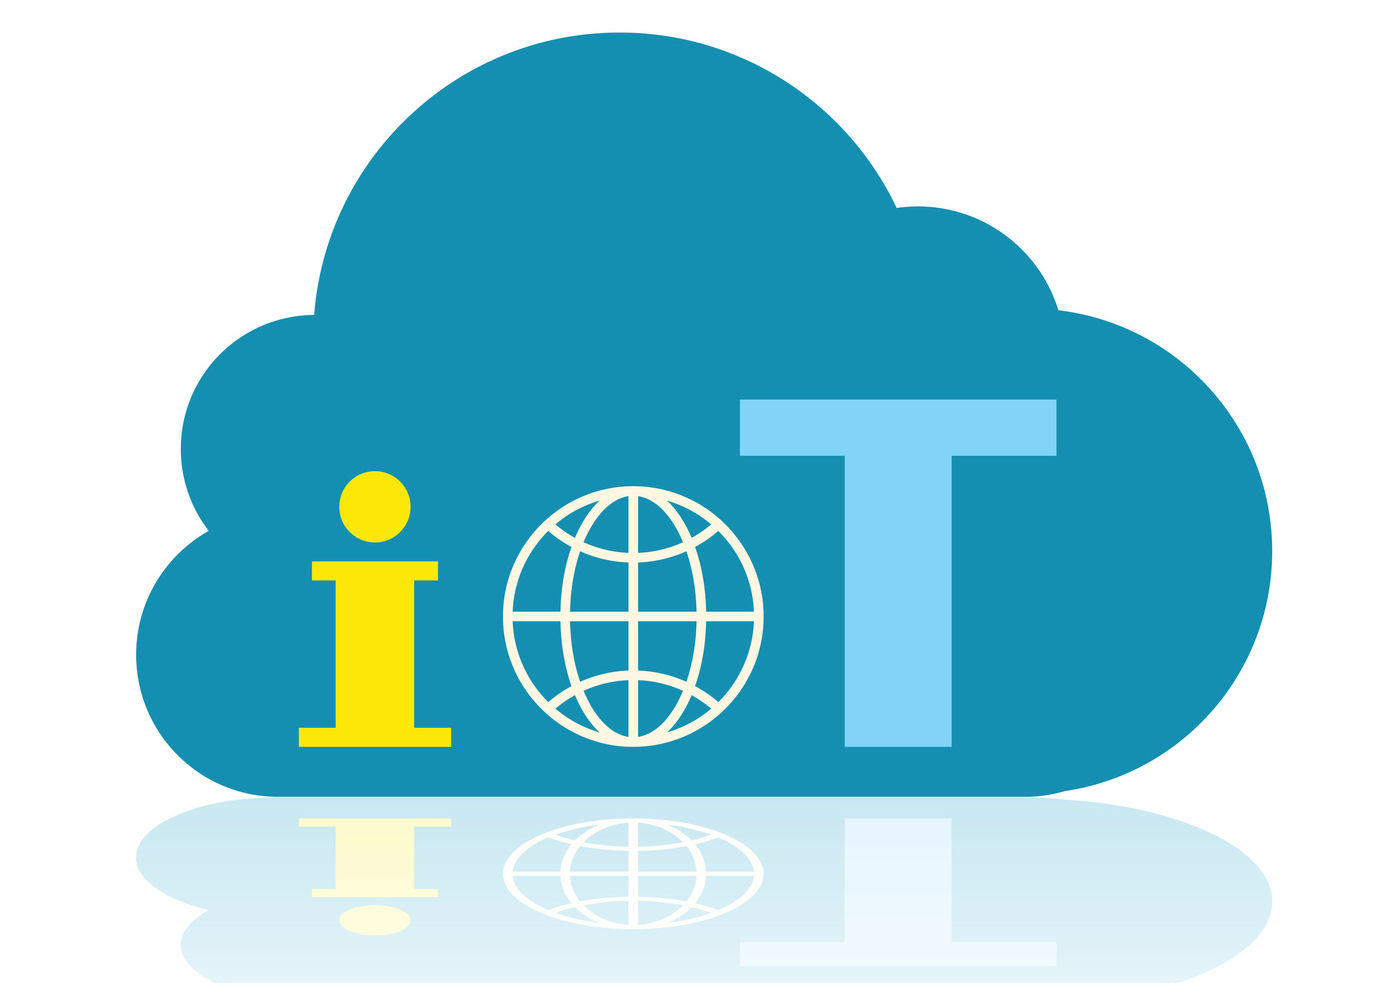 IoT is no more a next big thing, it's a reality with security concern